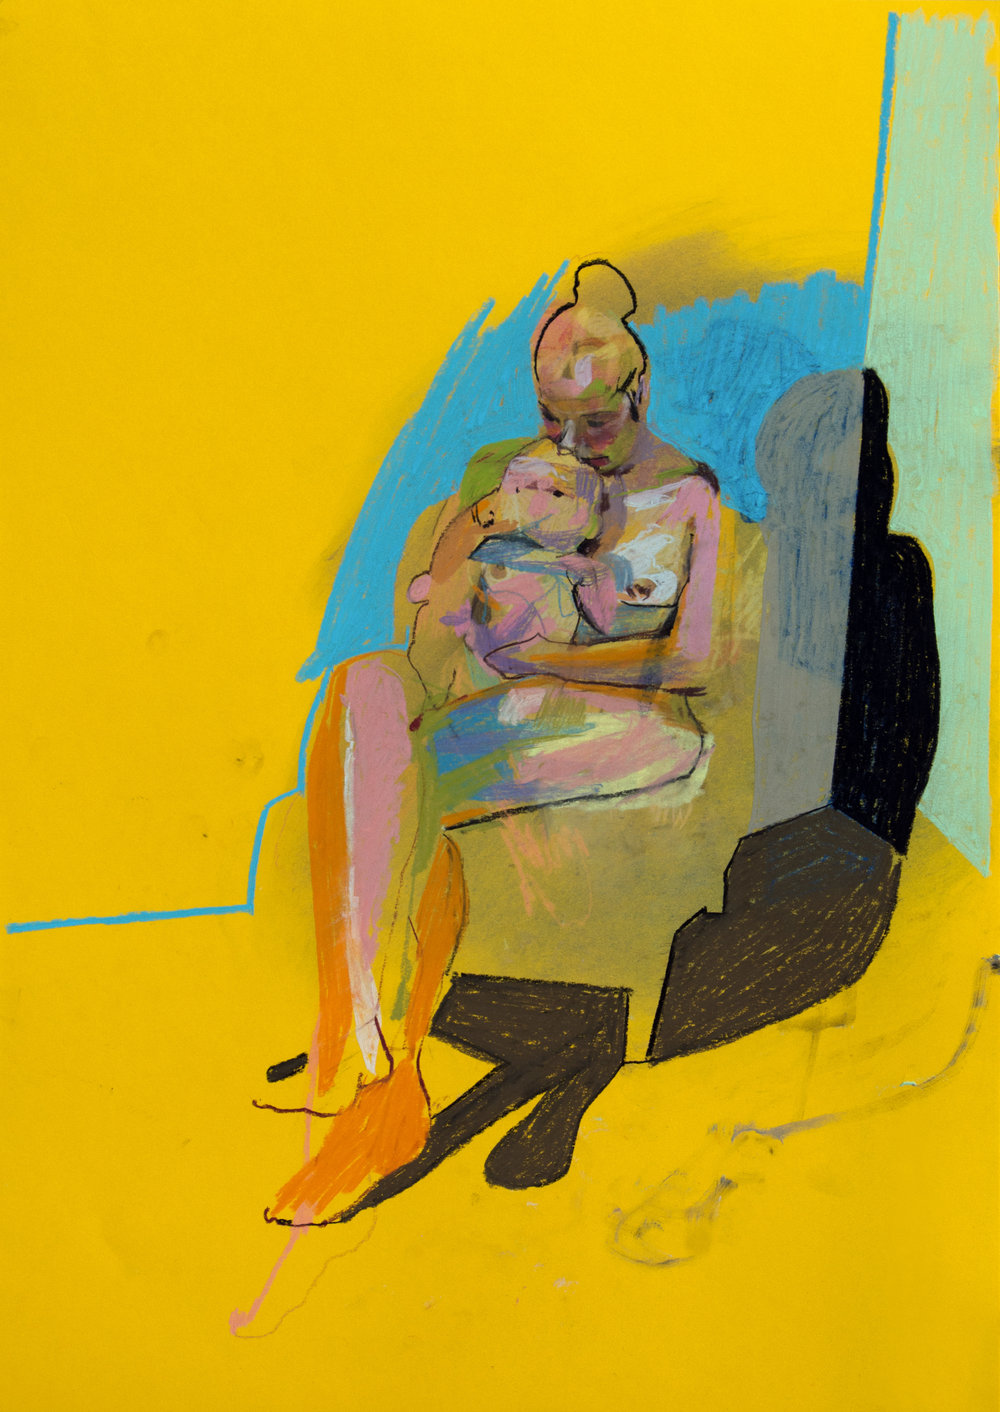 'Mother, model and child on yellow with blue wall', 2018, pastel, 59.3 x 42cm, £590  Available from  Partnership Editions